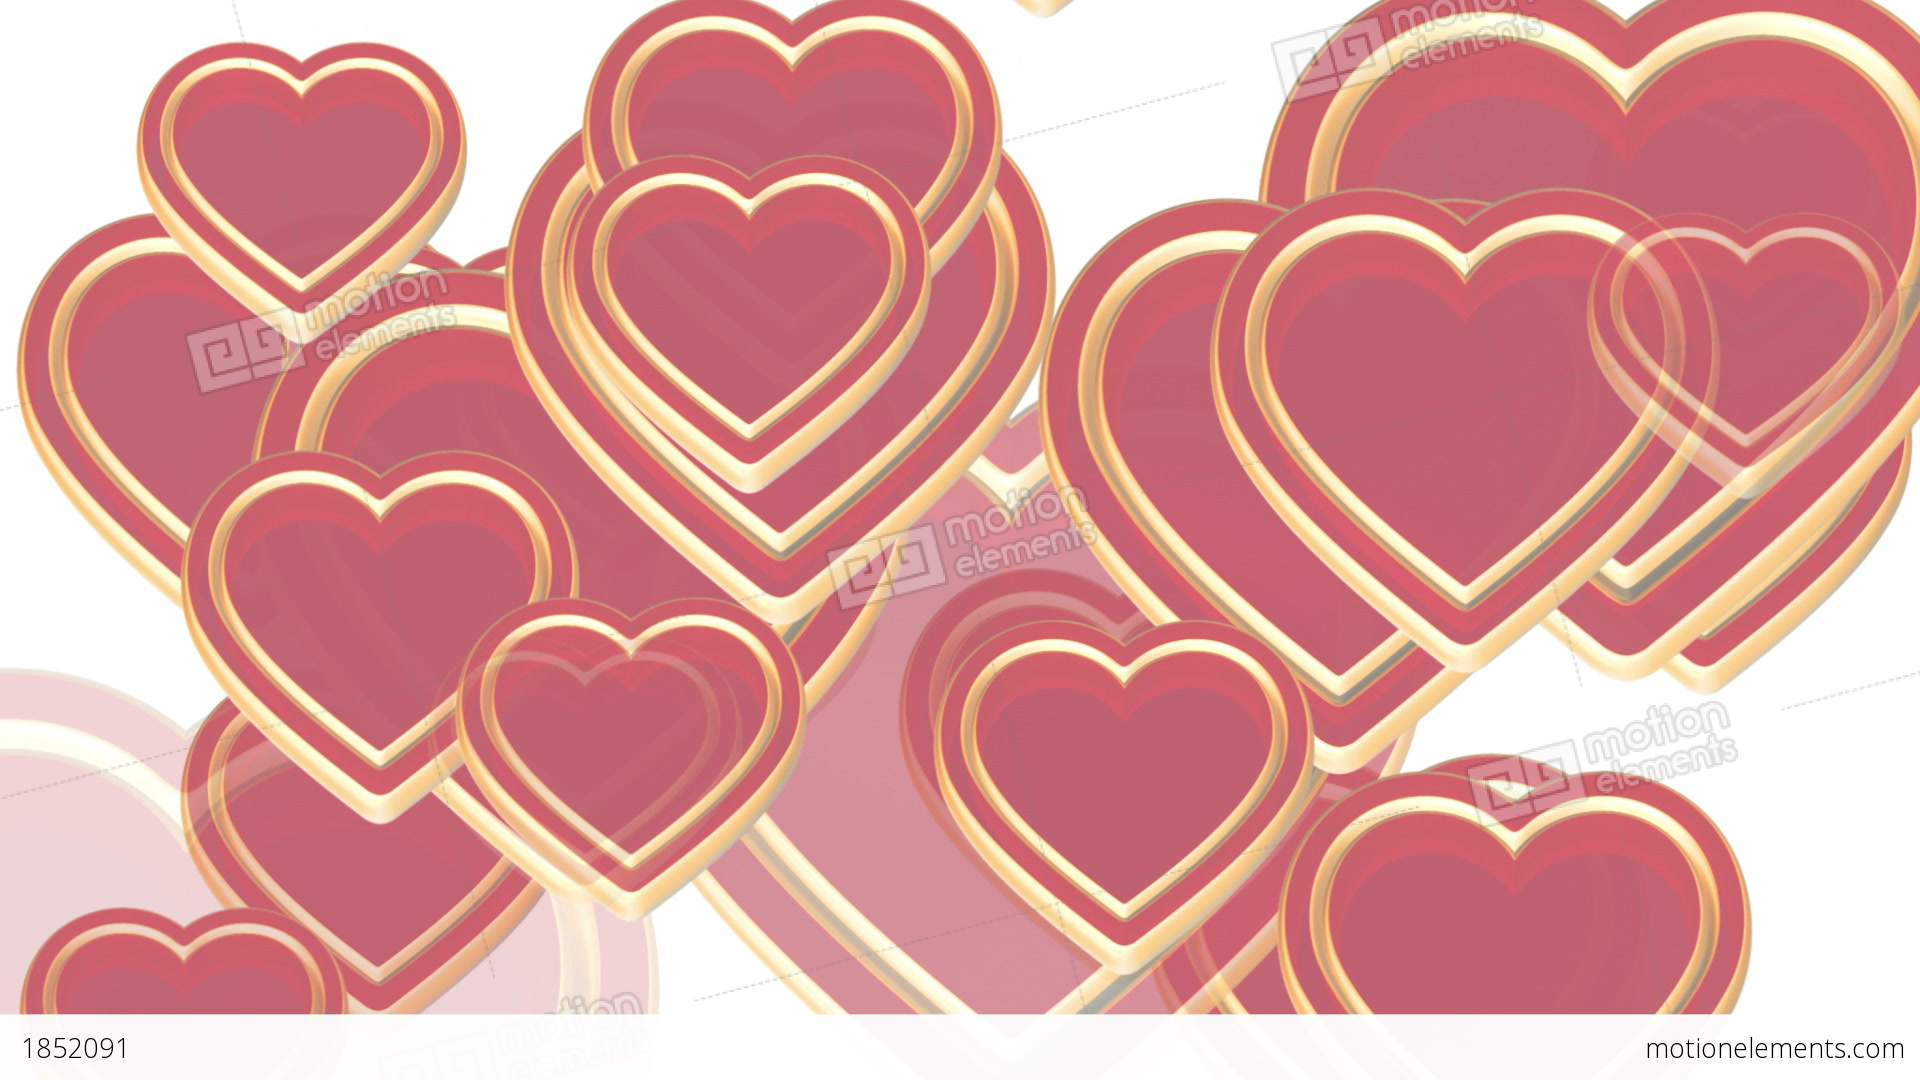 100 flying love hearts, wedding animation, valentines day, alpha